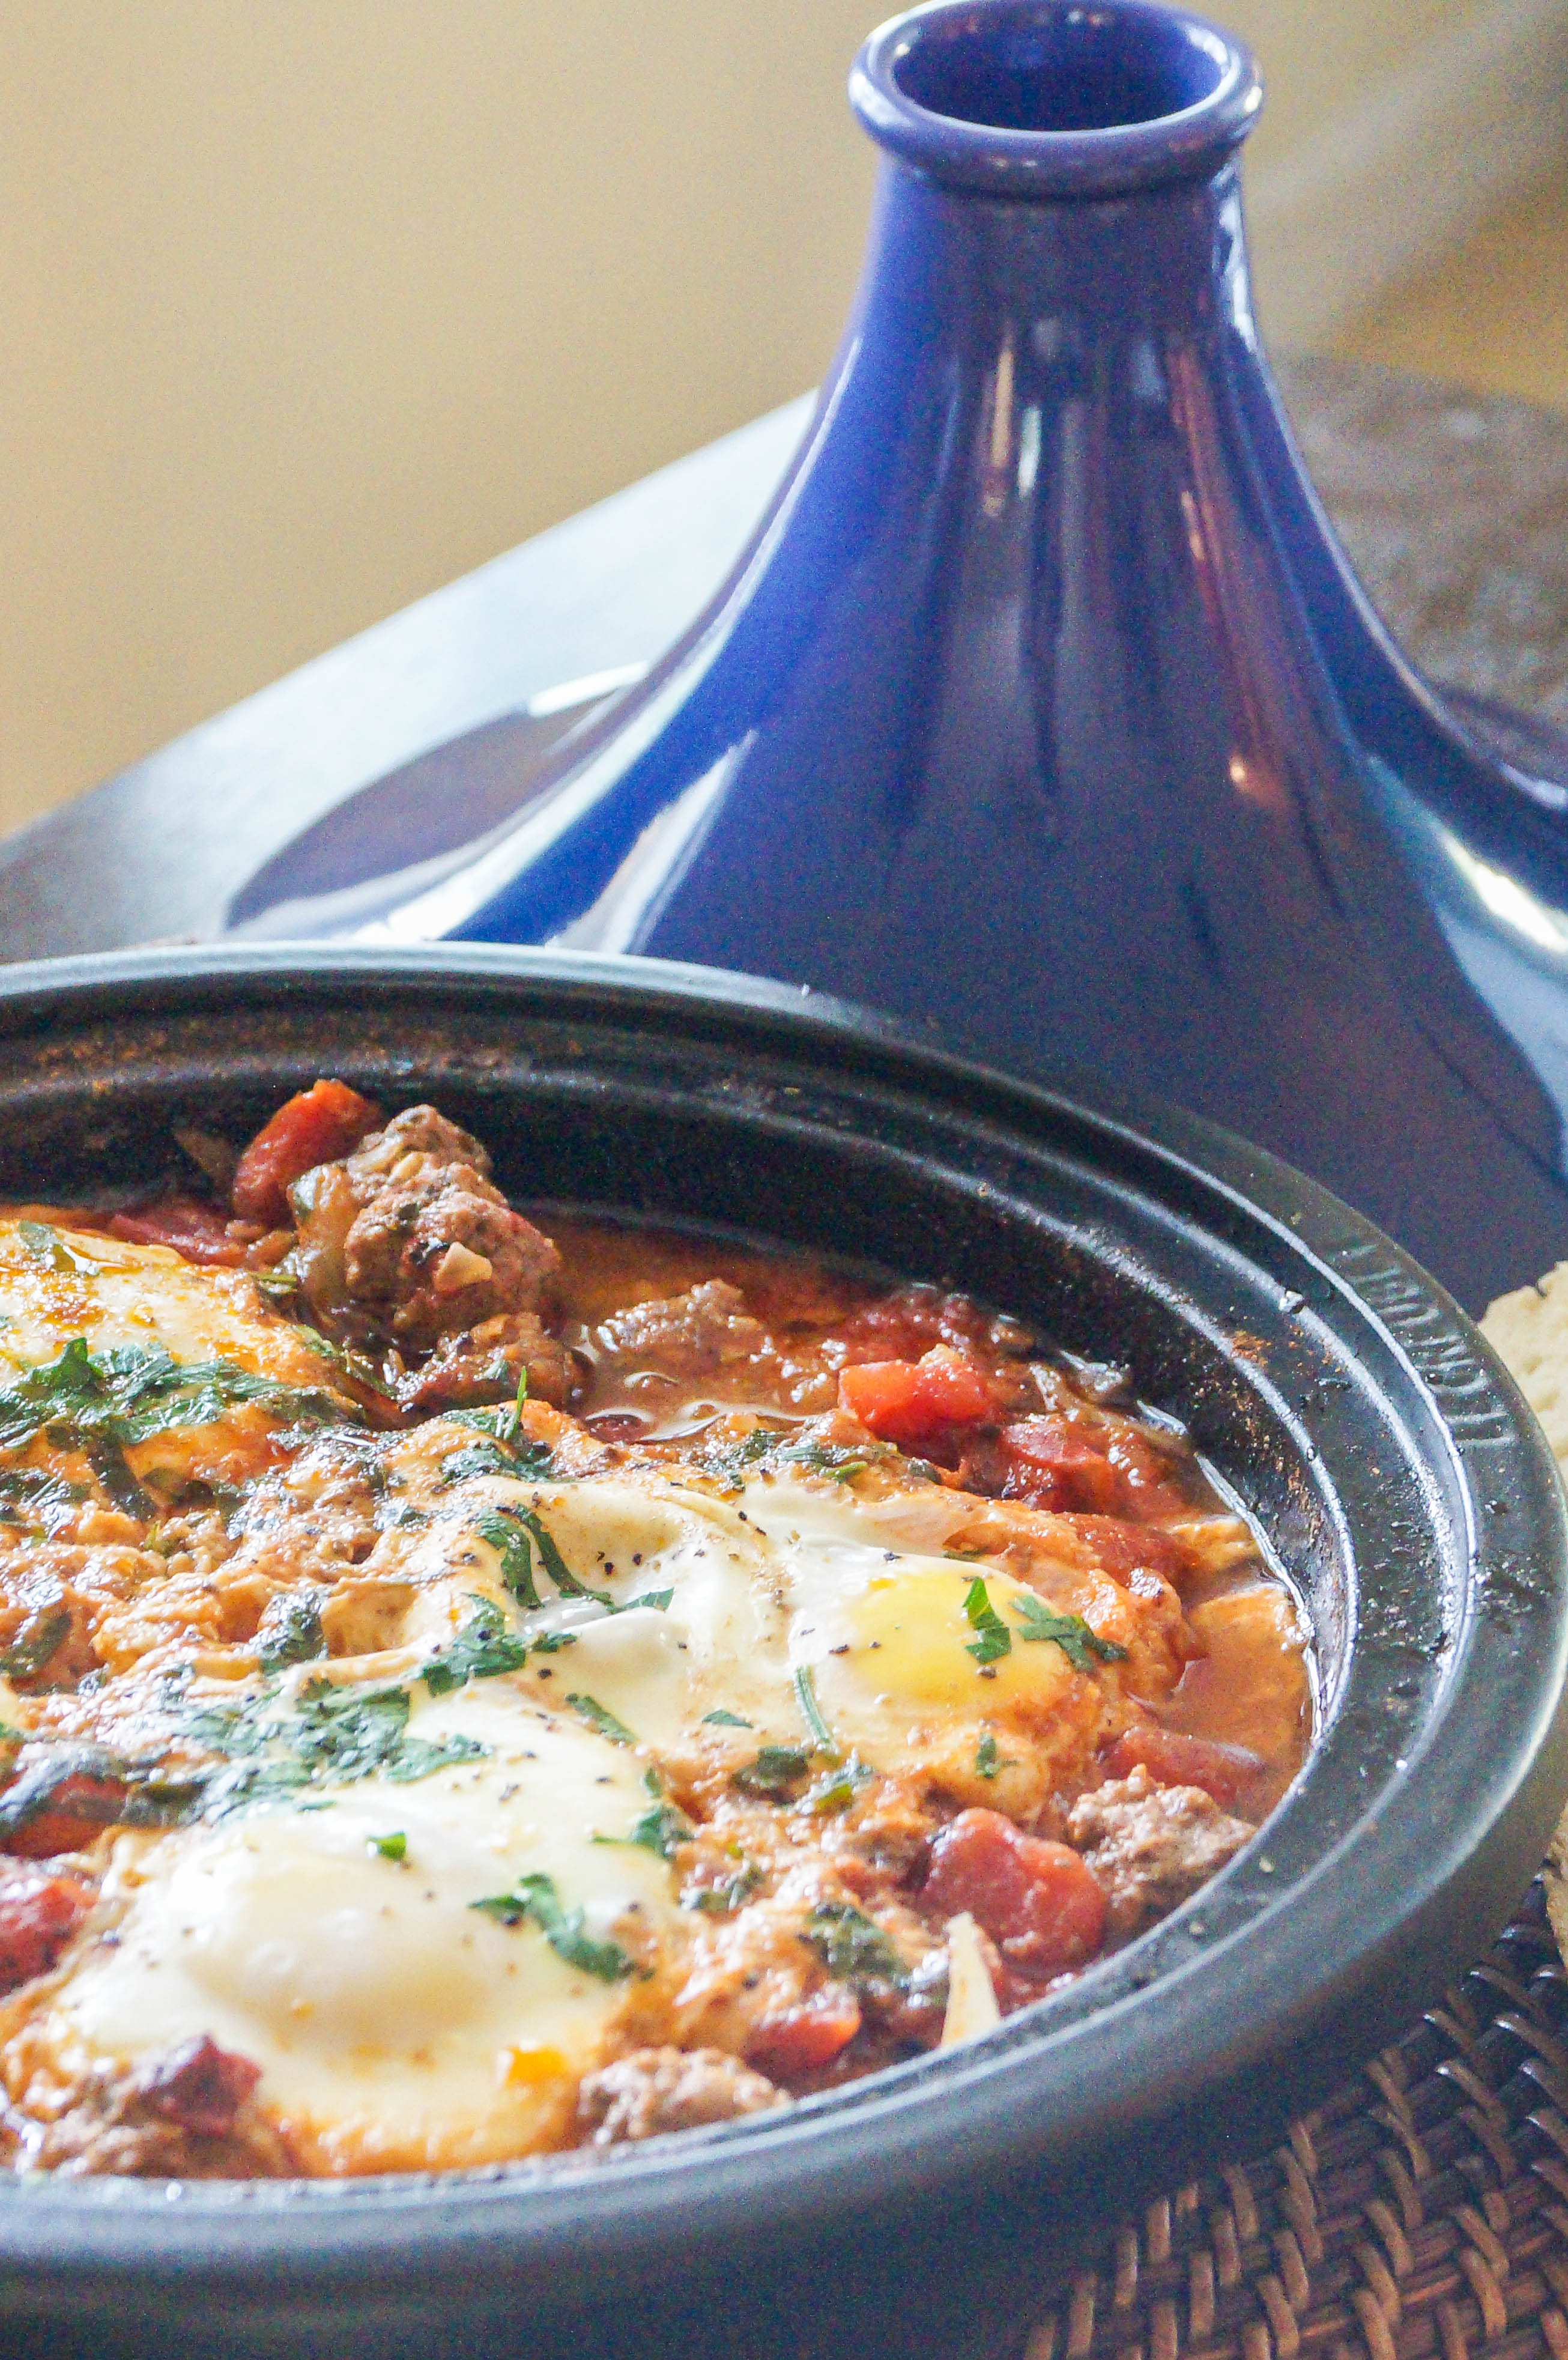 tagine kefta tomato and egg tagine recipes dishmaps kefta tomato and ...